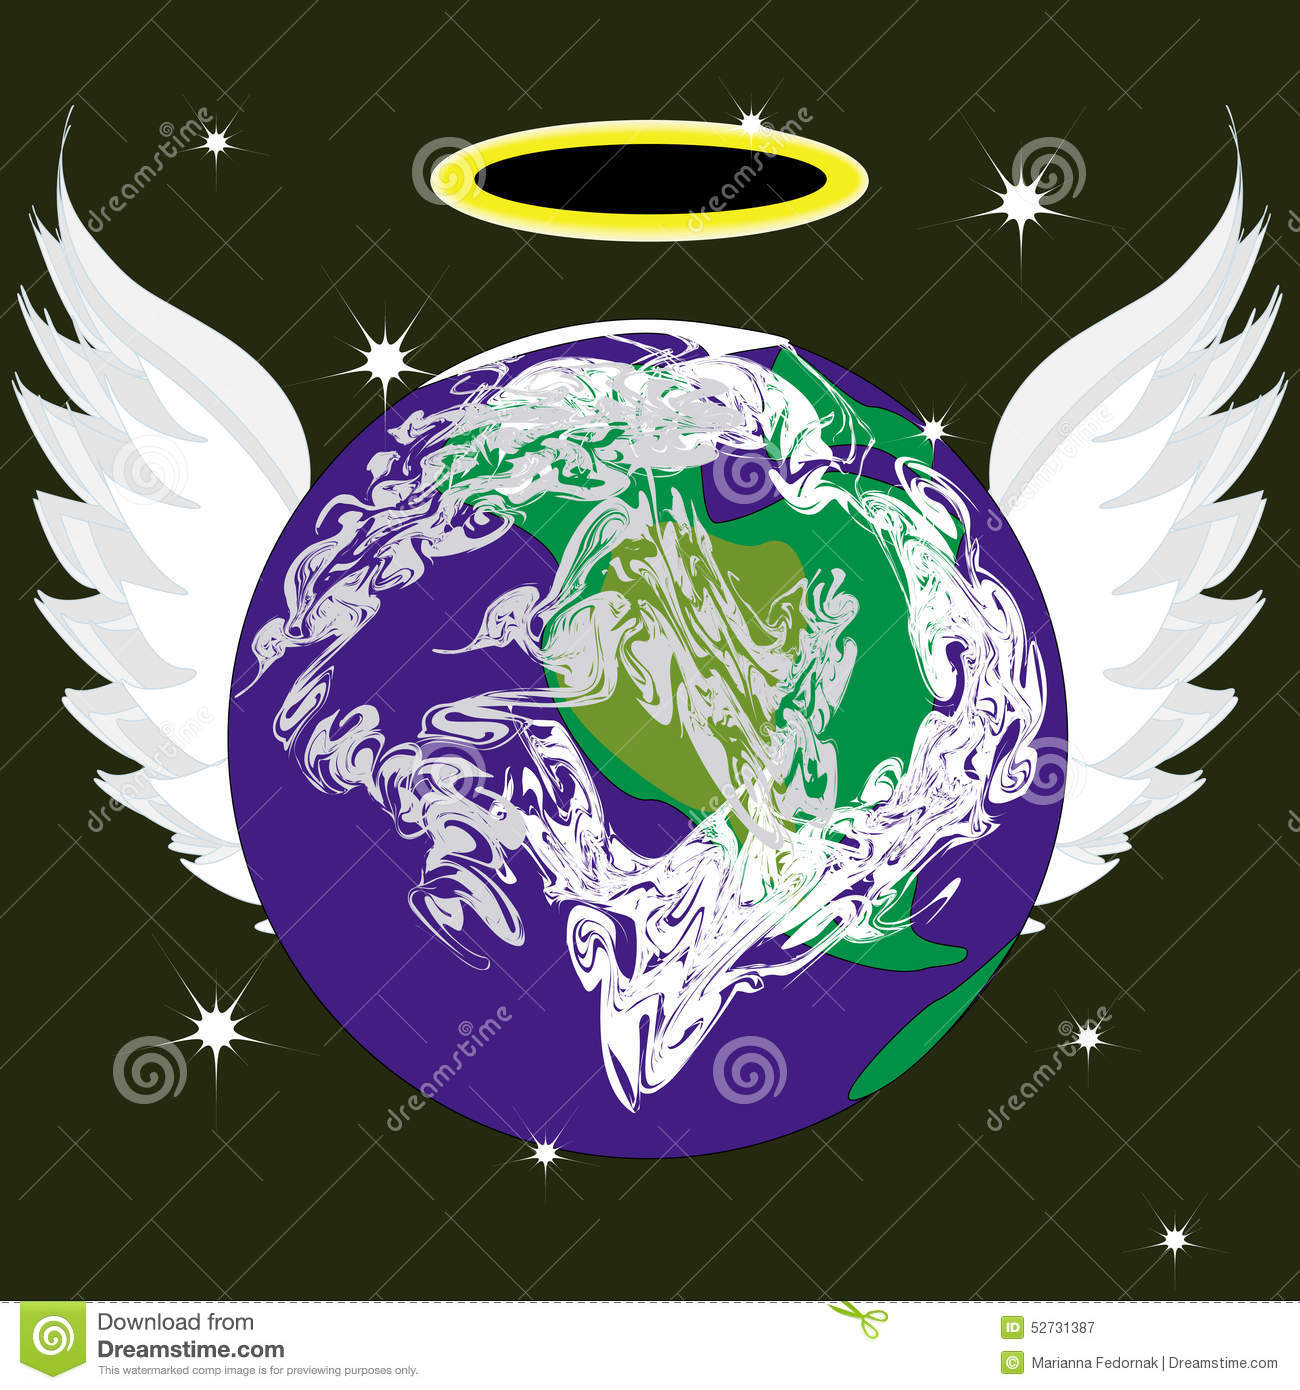 Wings clipart earth Clipart · (29+) angels angel